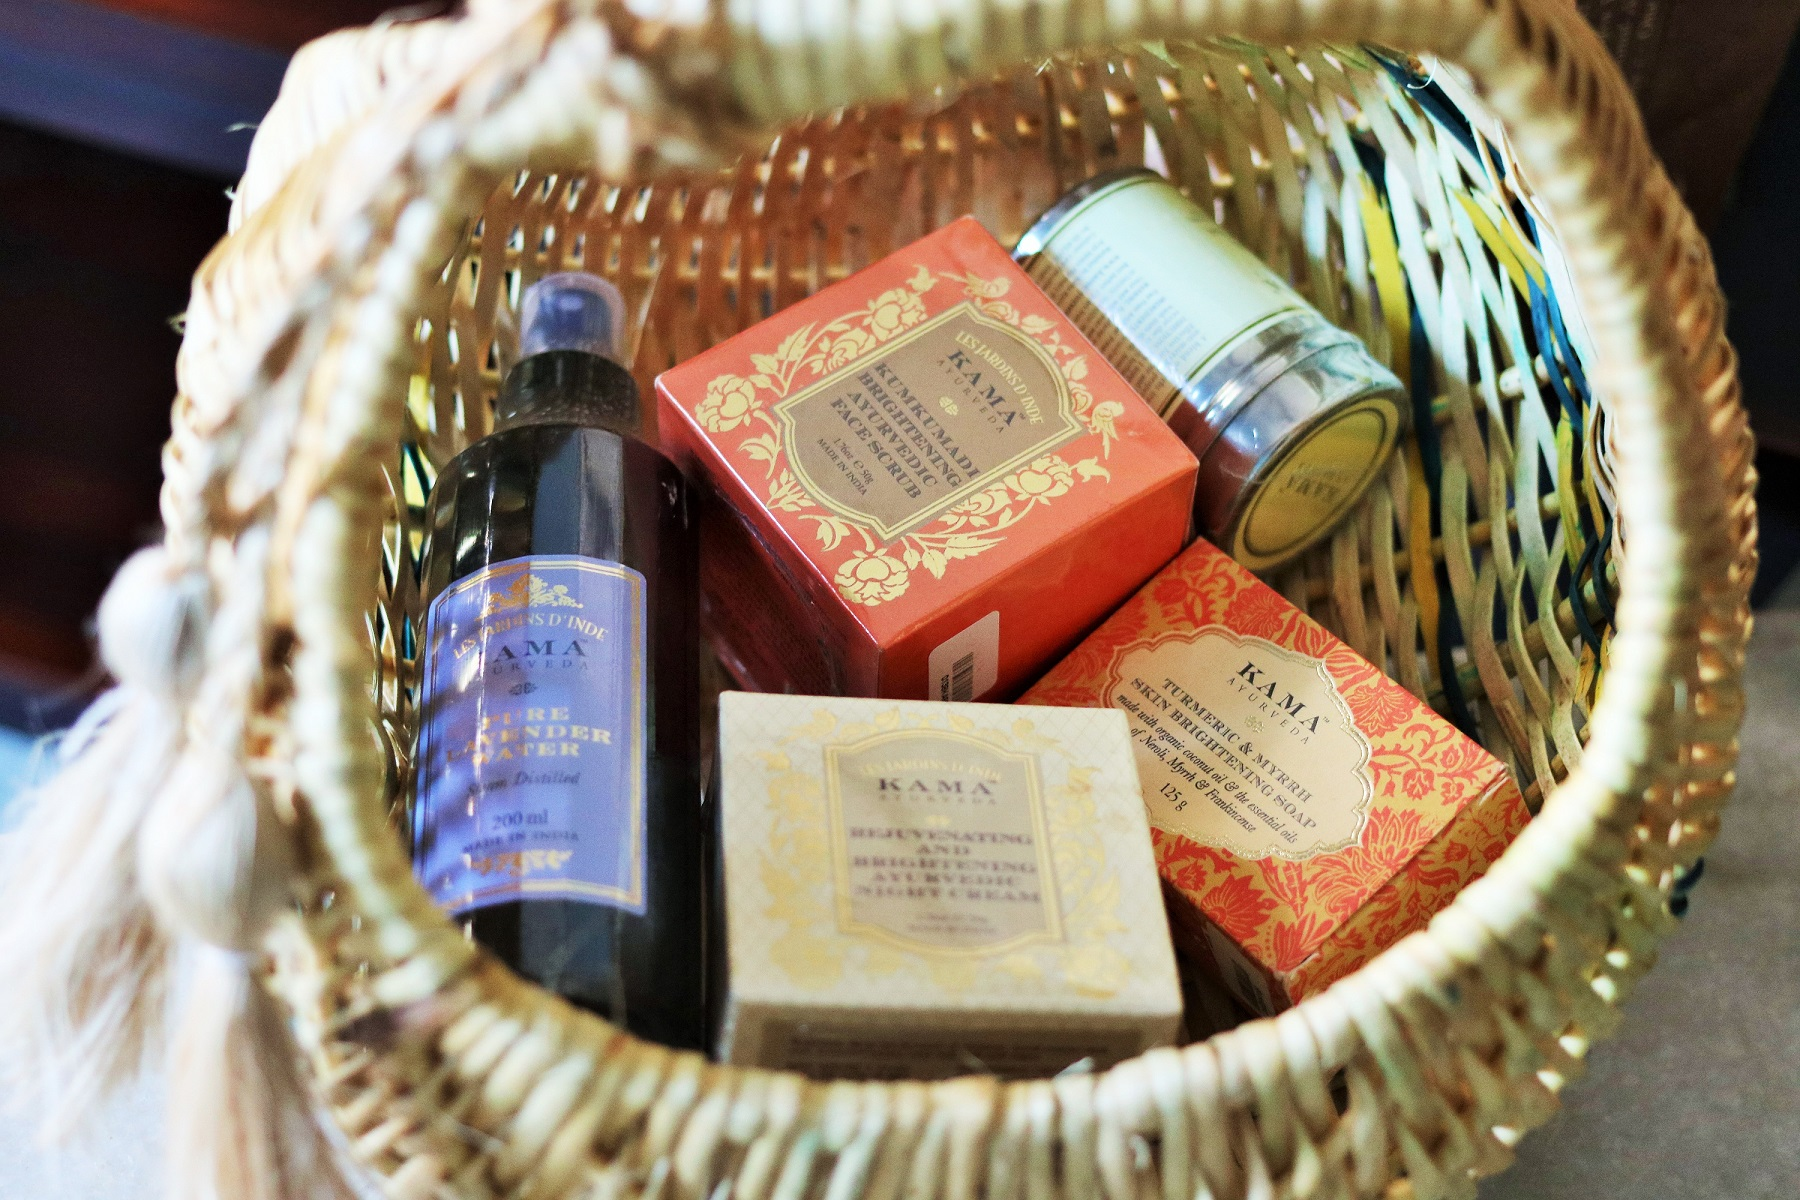 Skincare Routine With Kama Ayurveda